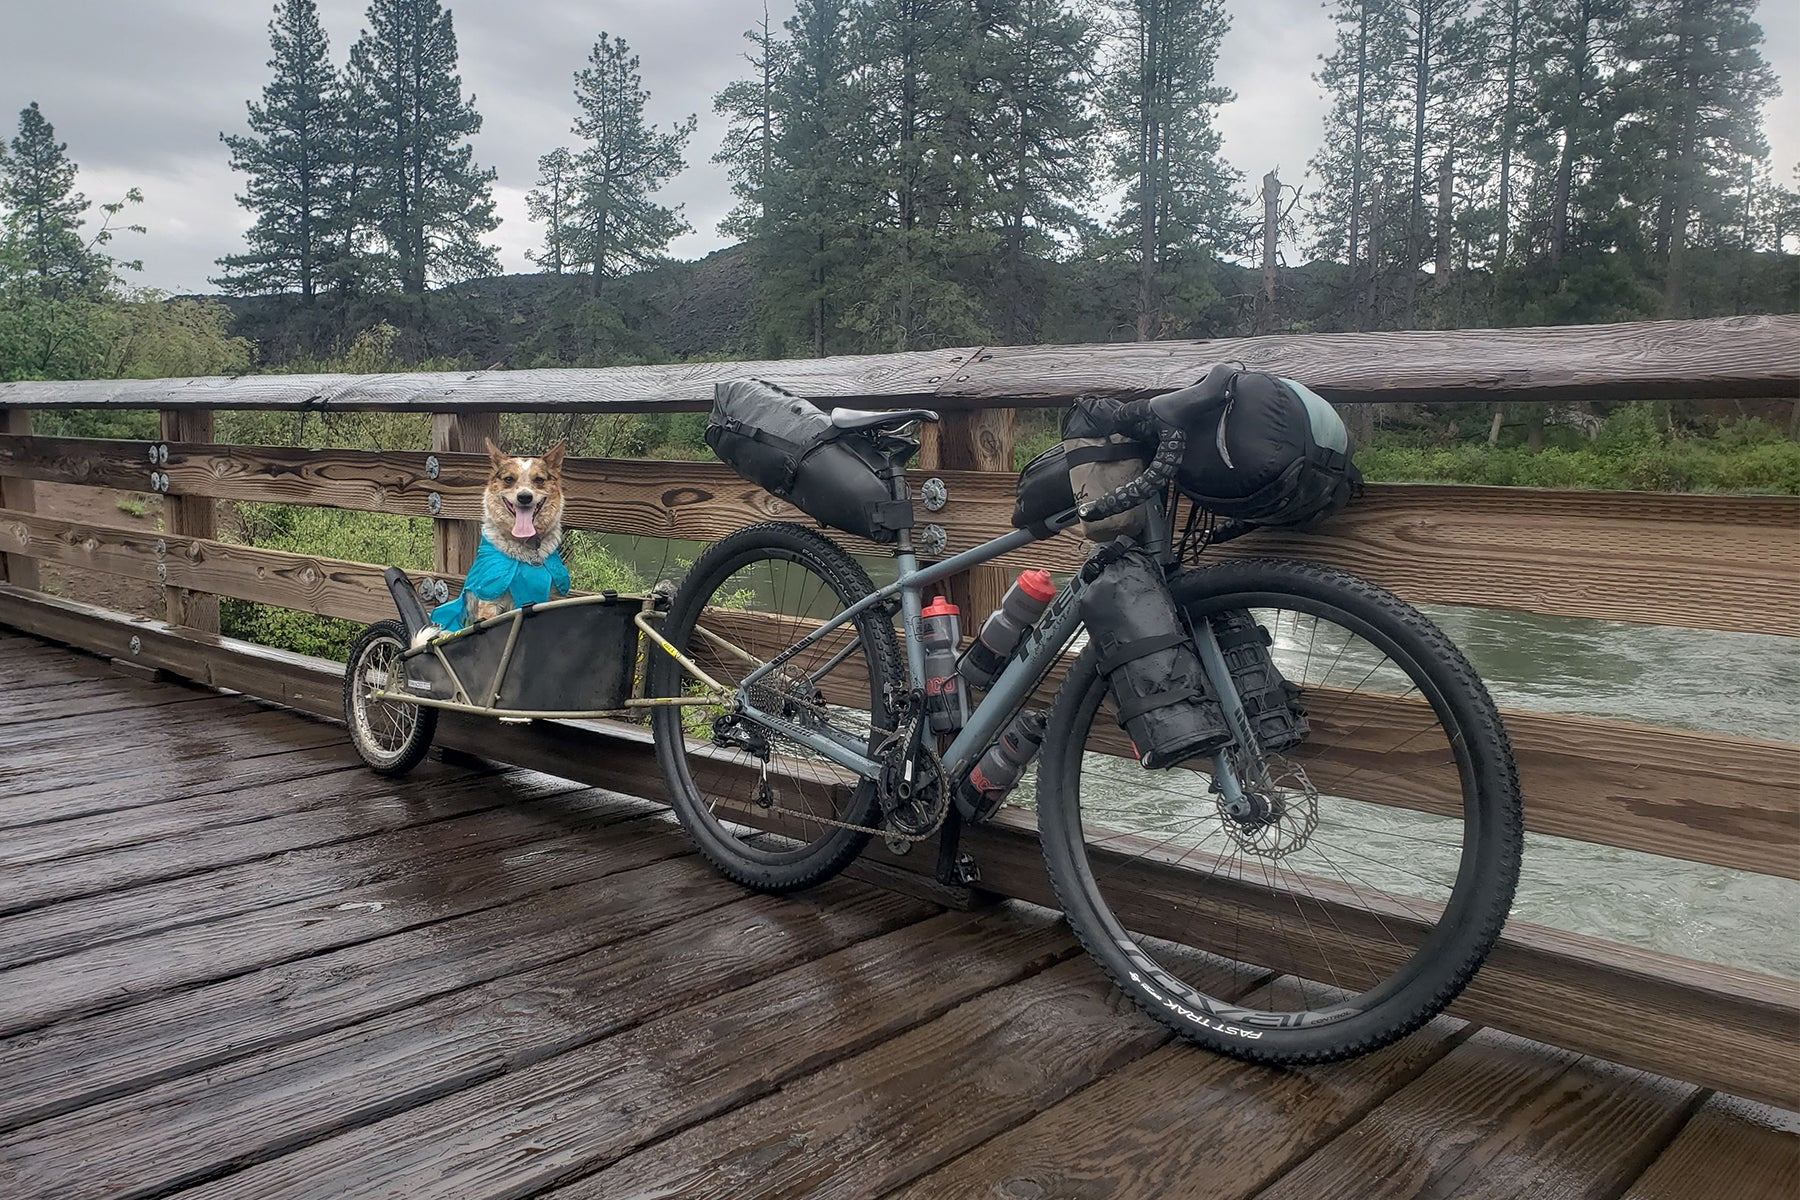 Emma in the trailer behind the gravel bike loaded up for bikepacking on a wood bridge in Central Oregon.